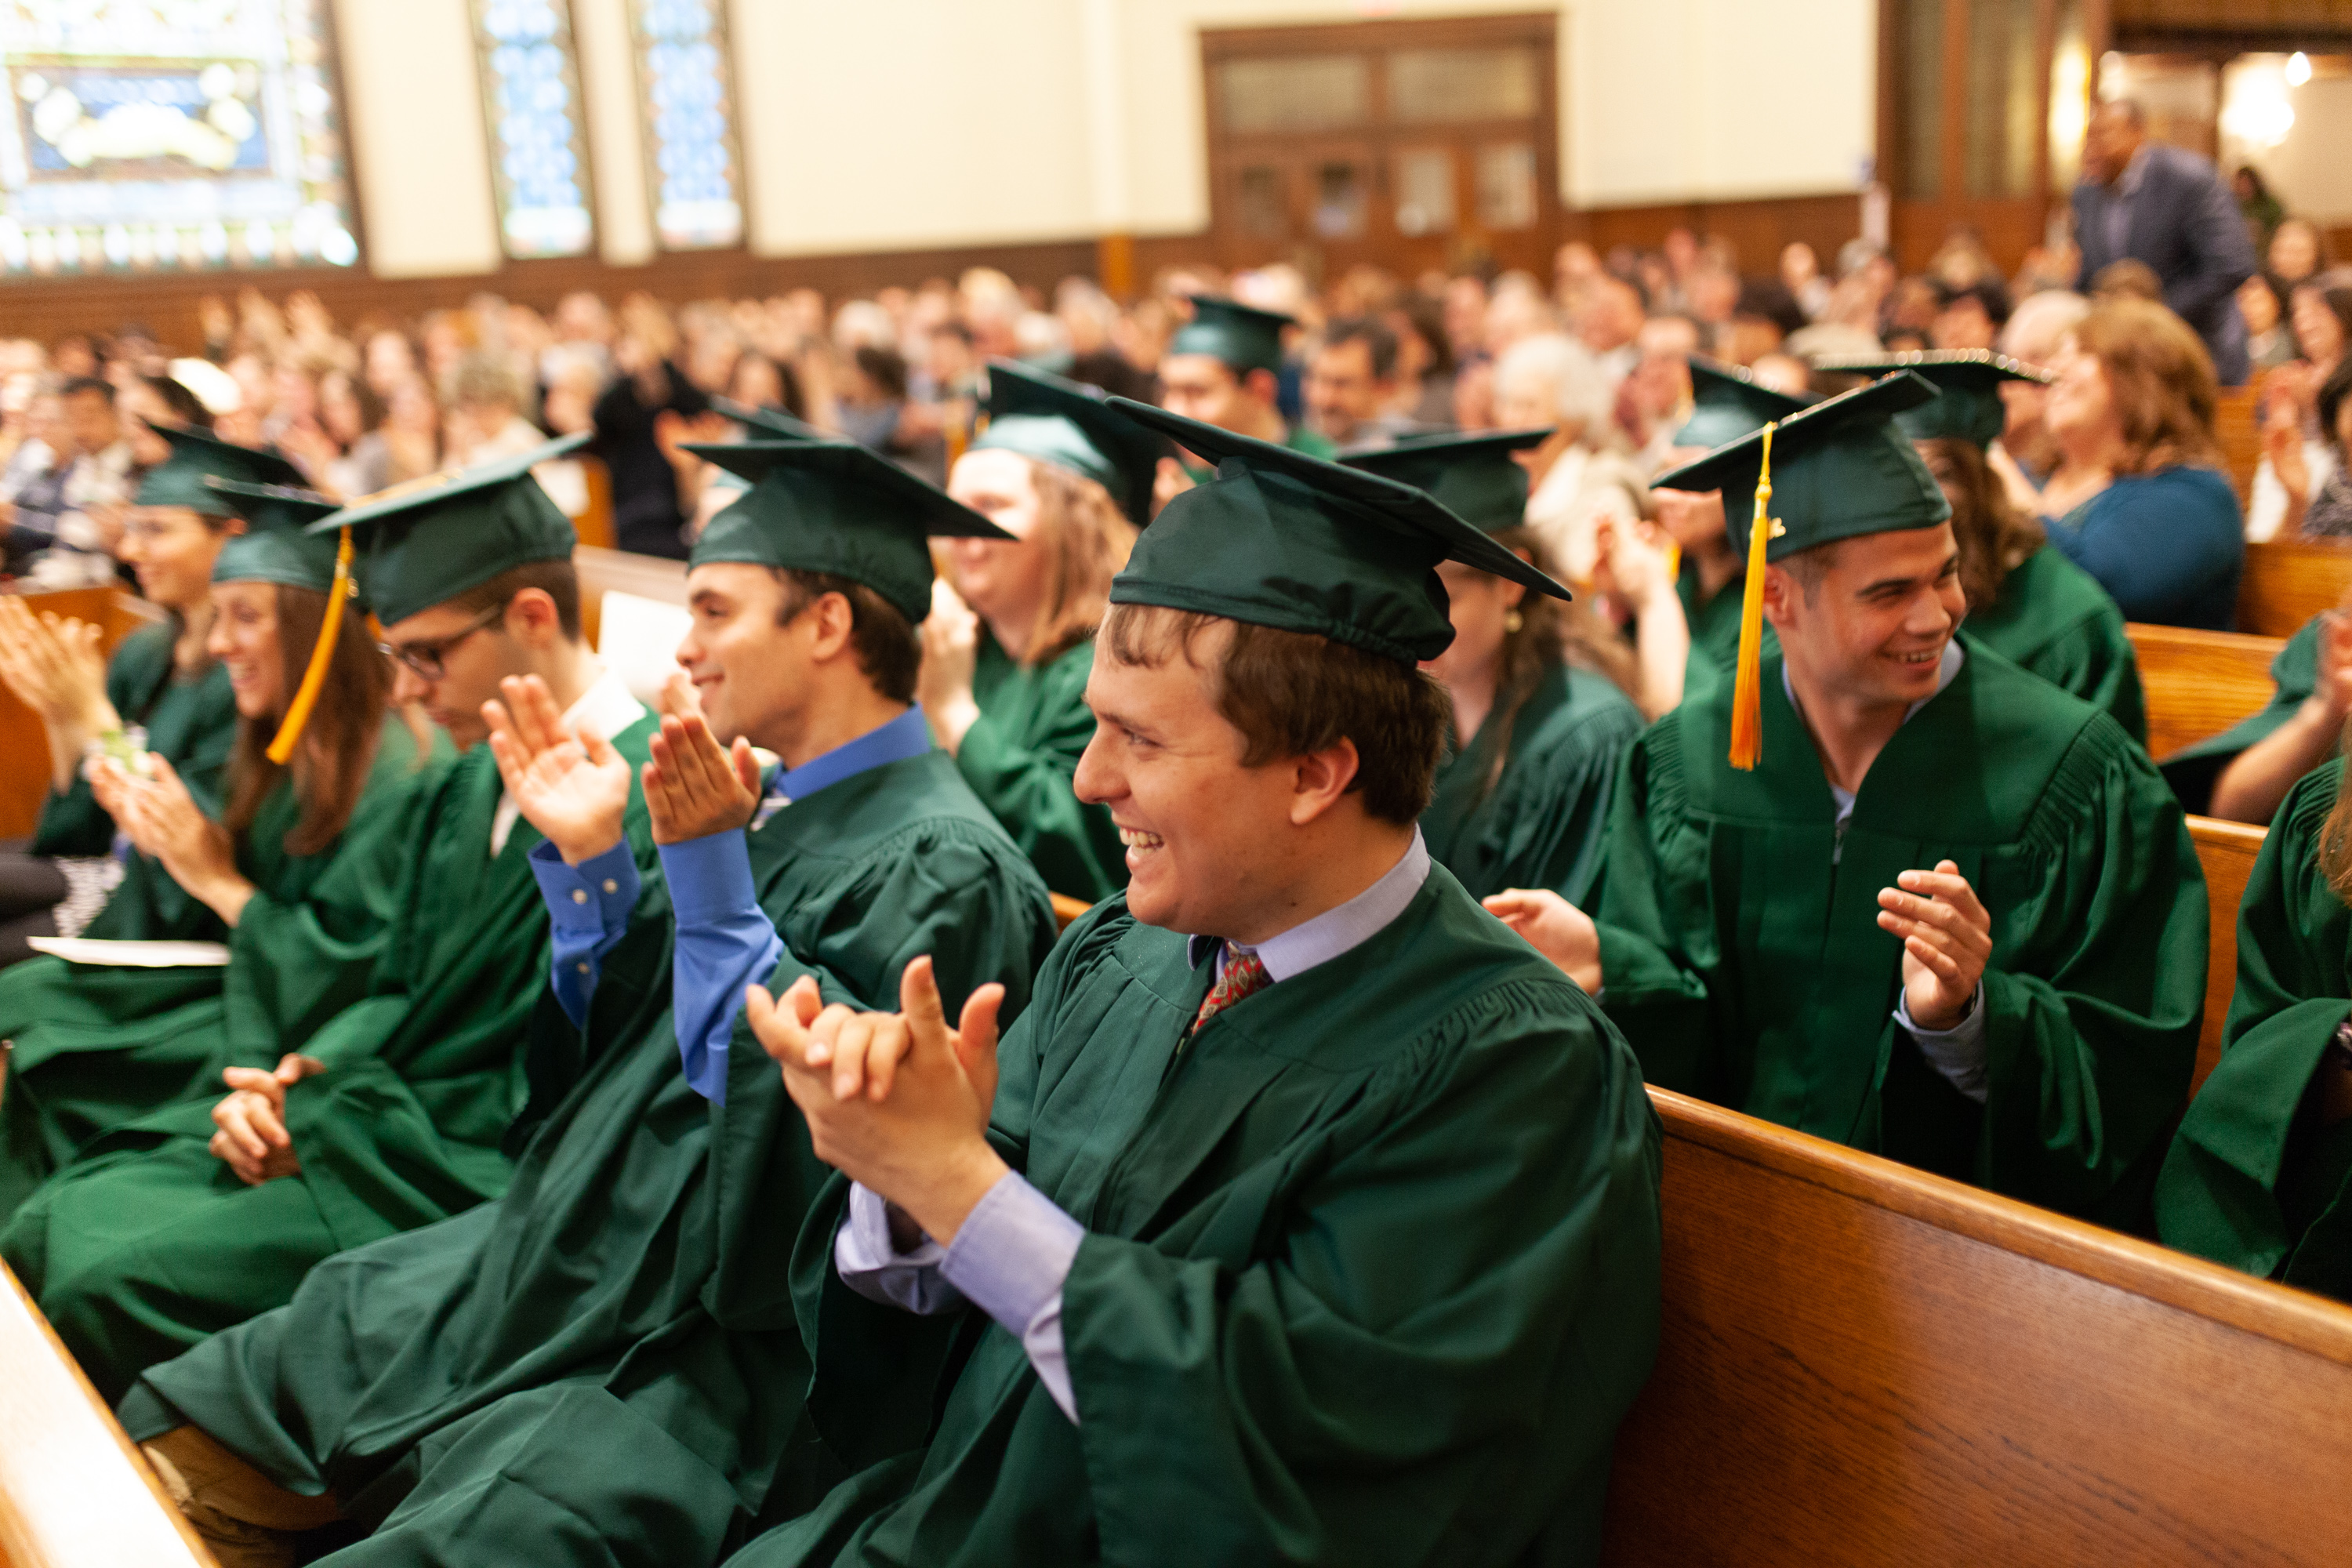 Graduates clap from the pews